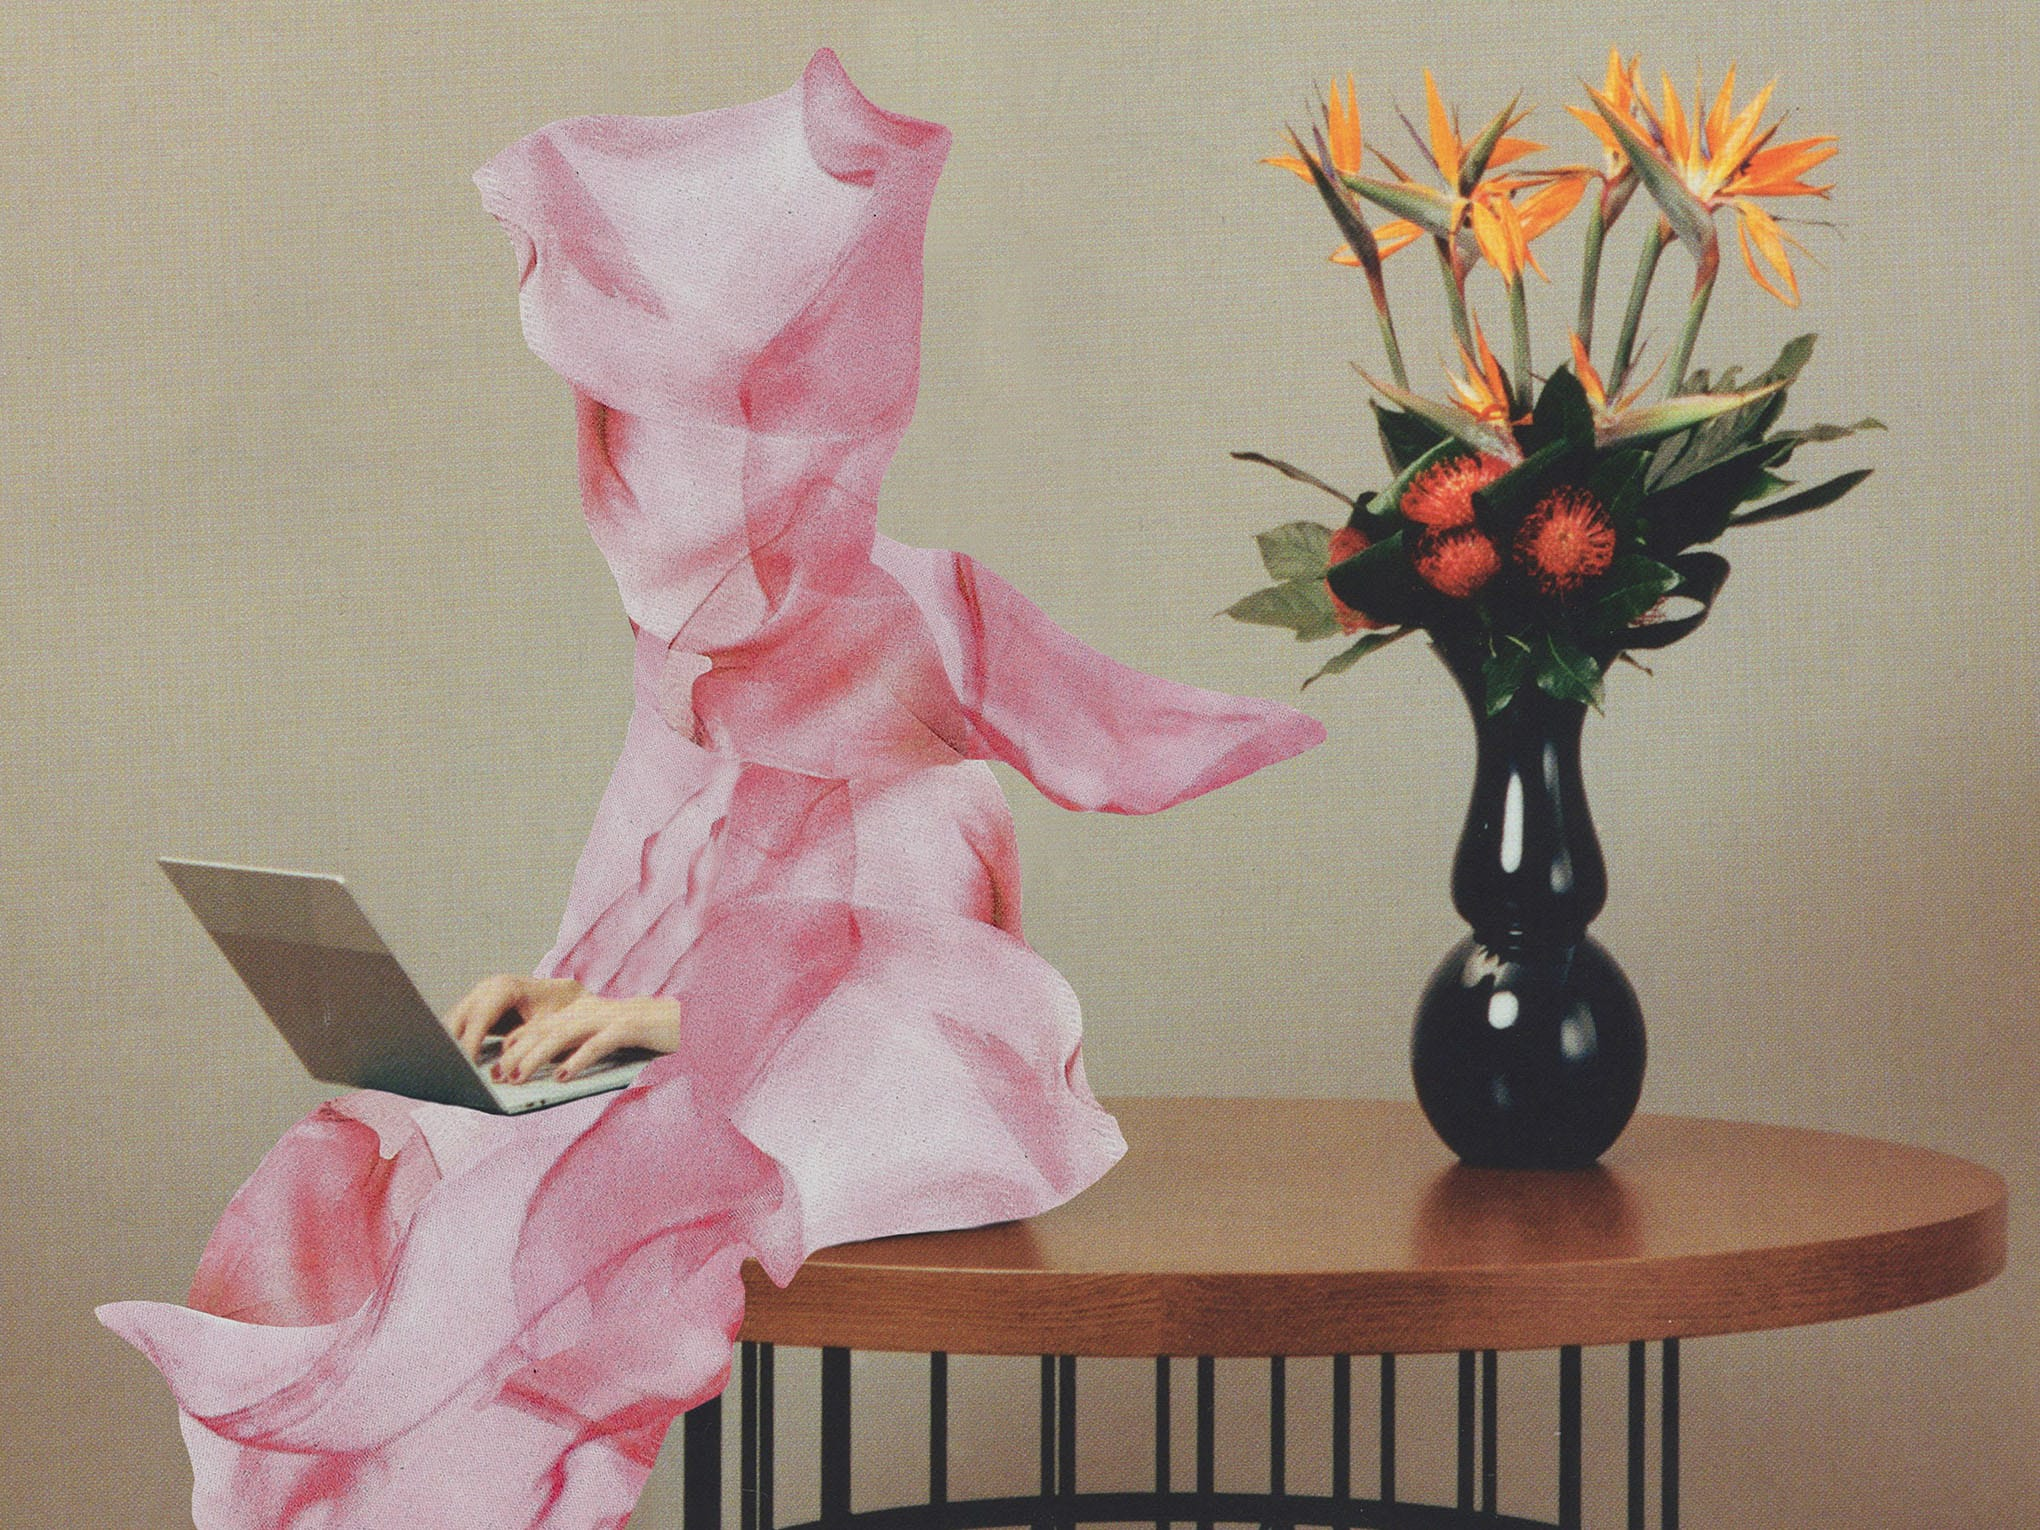 illustration of woman wrapped in pink sheet on table on laptop